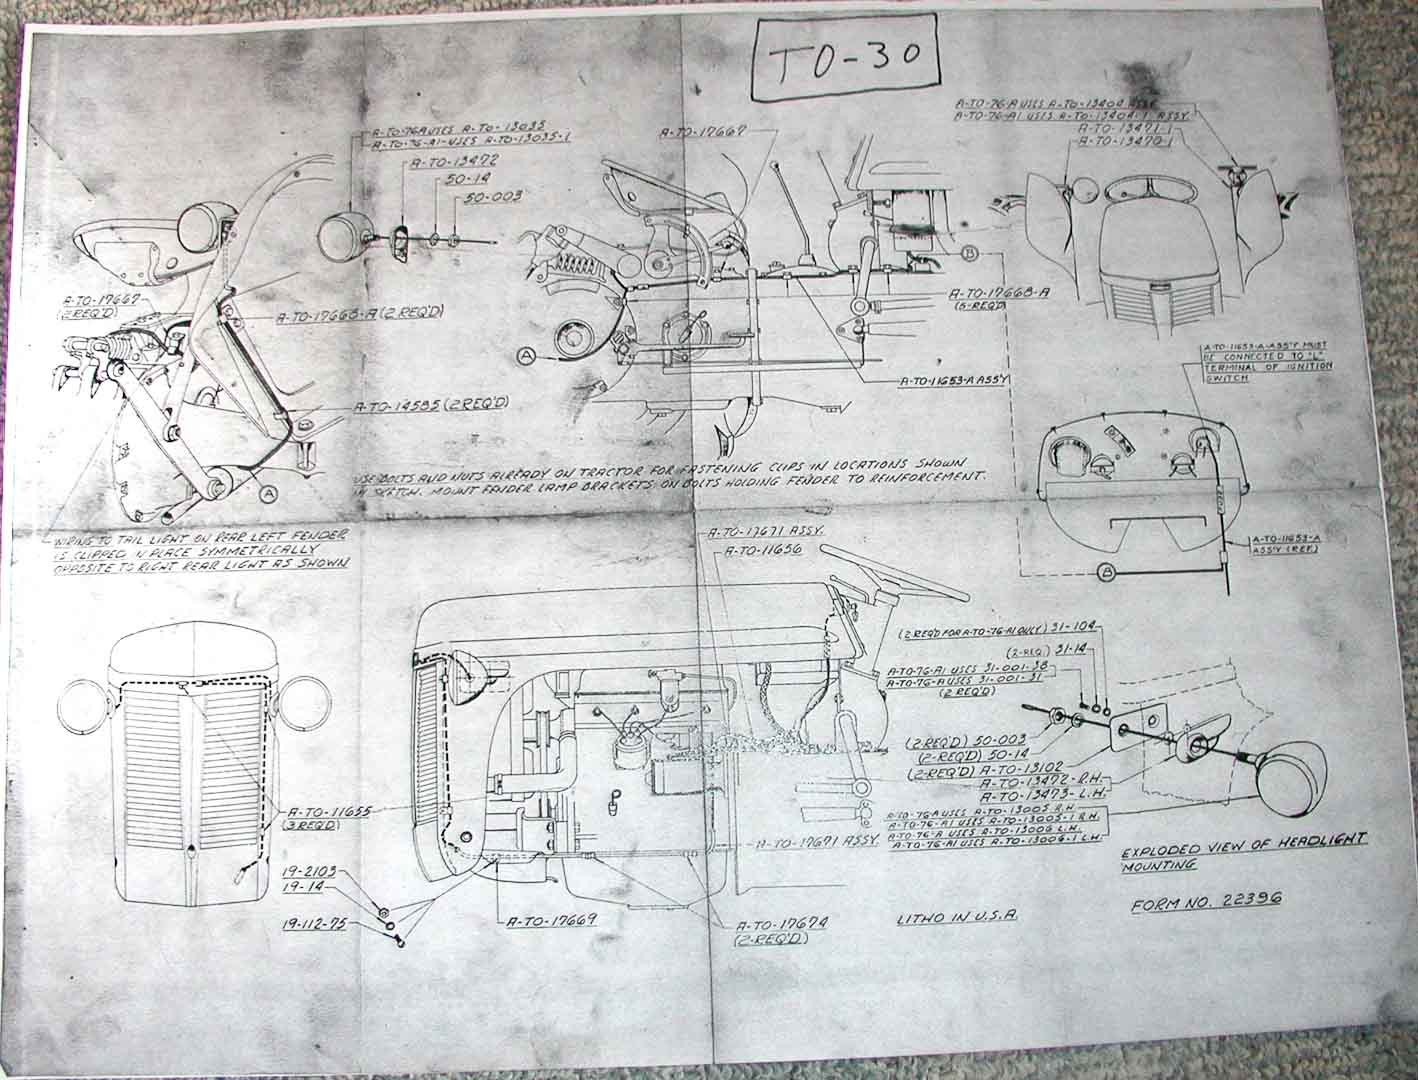 wiring diagram for super m tractor wiring diagram for to30 ferguson tractor